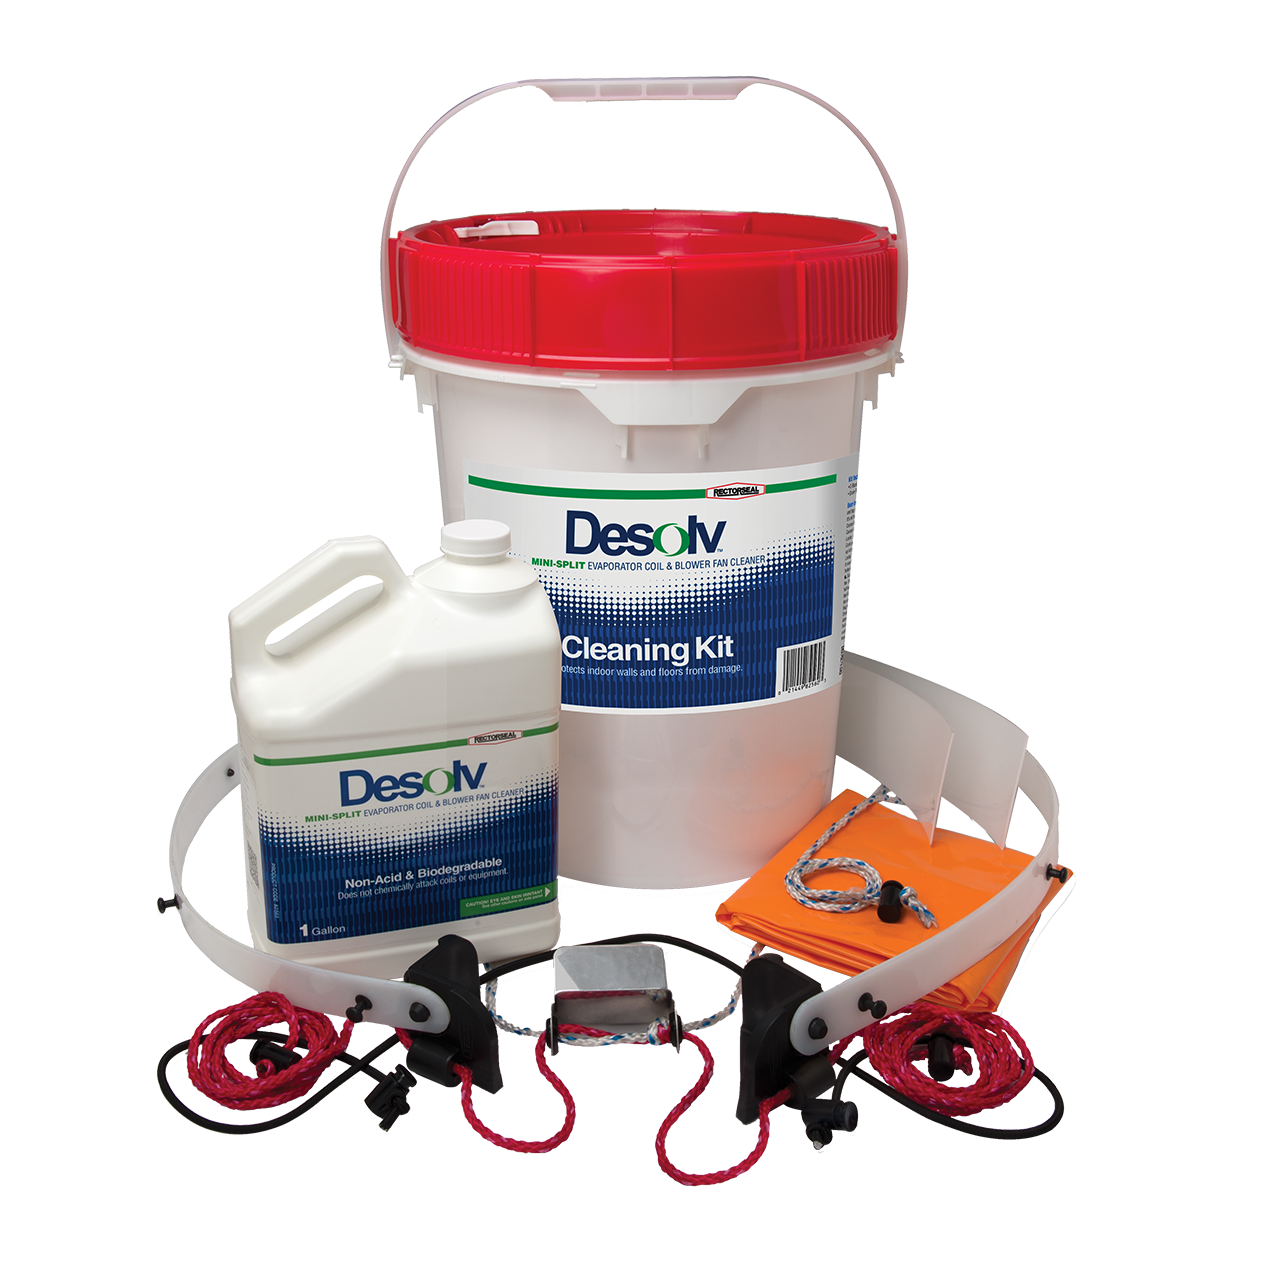 Desolv Cleaning Kit